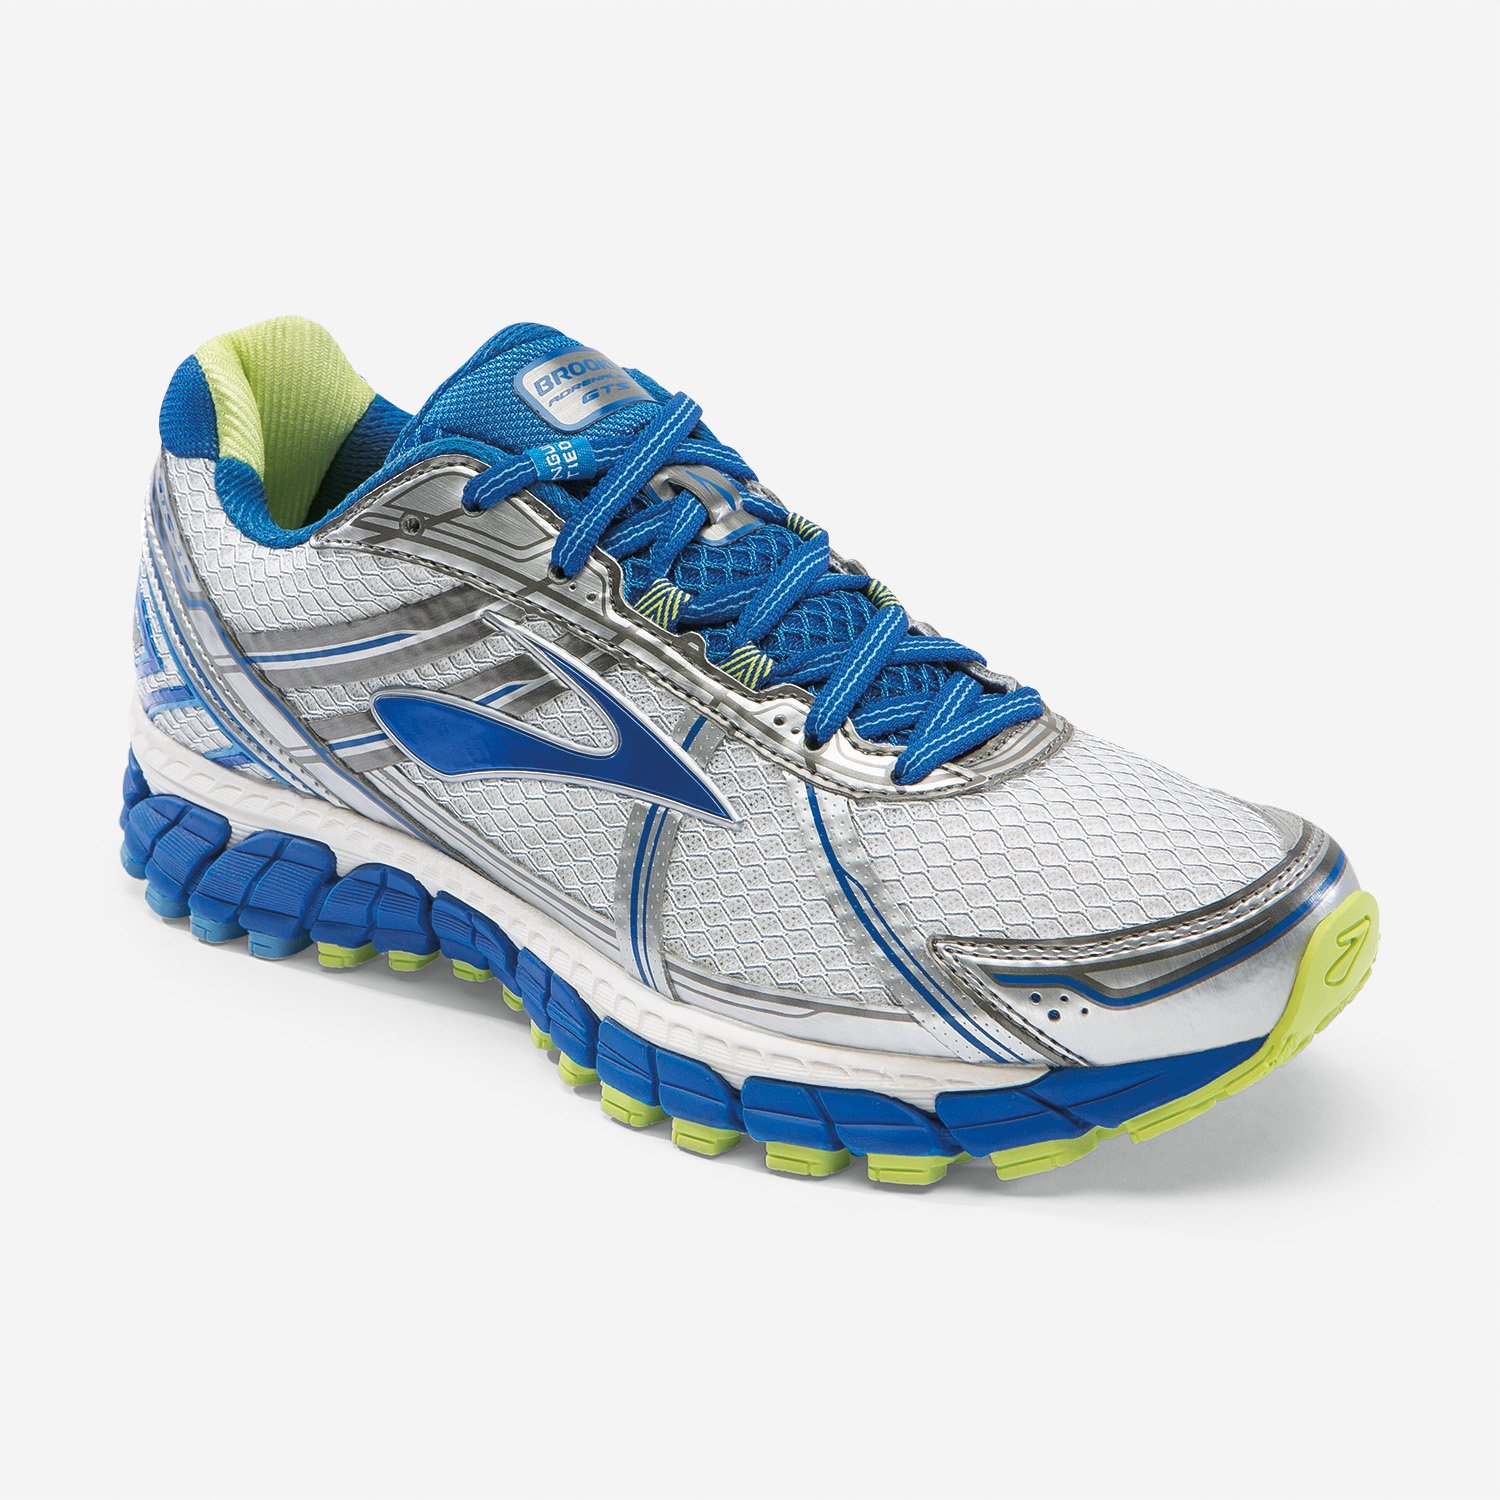 Brooks Lady Adrenaline GTS 15 2A in Weiß, Blau, Grün